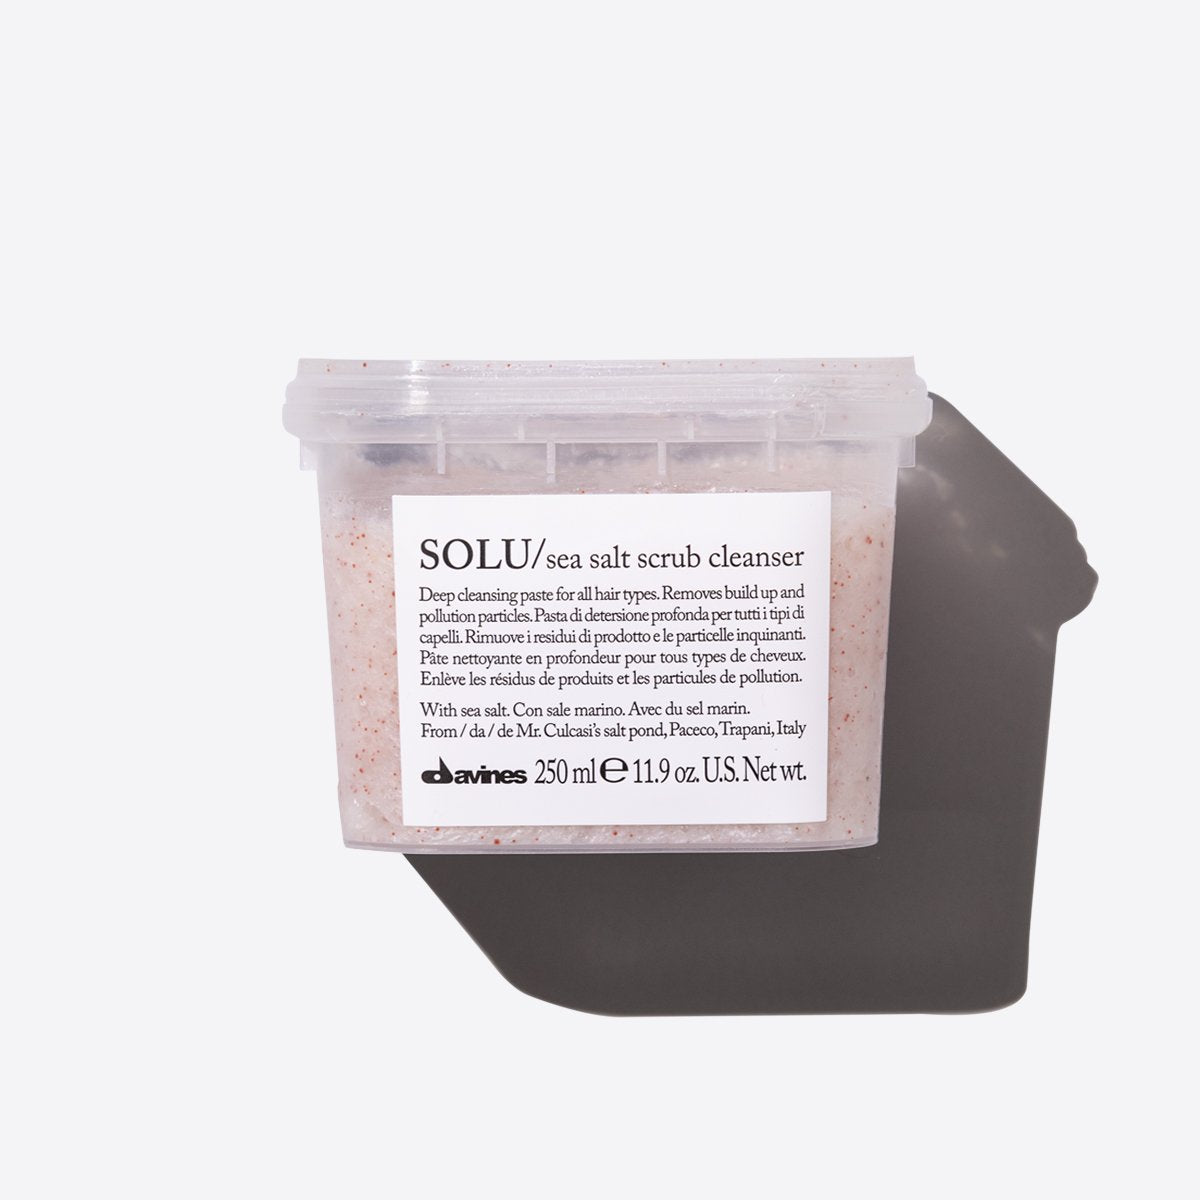 SOLU Sea Salt Scrub Cleanser by Davines